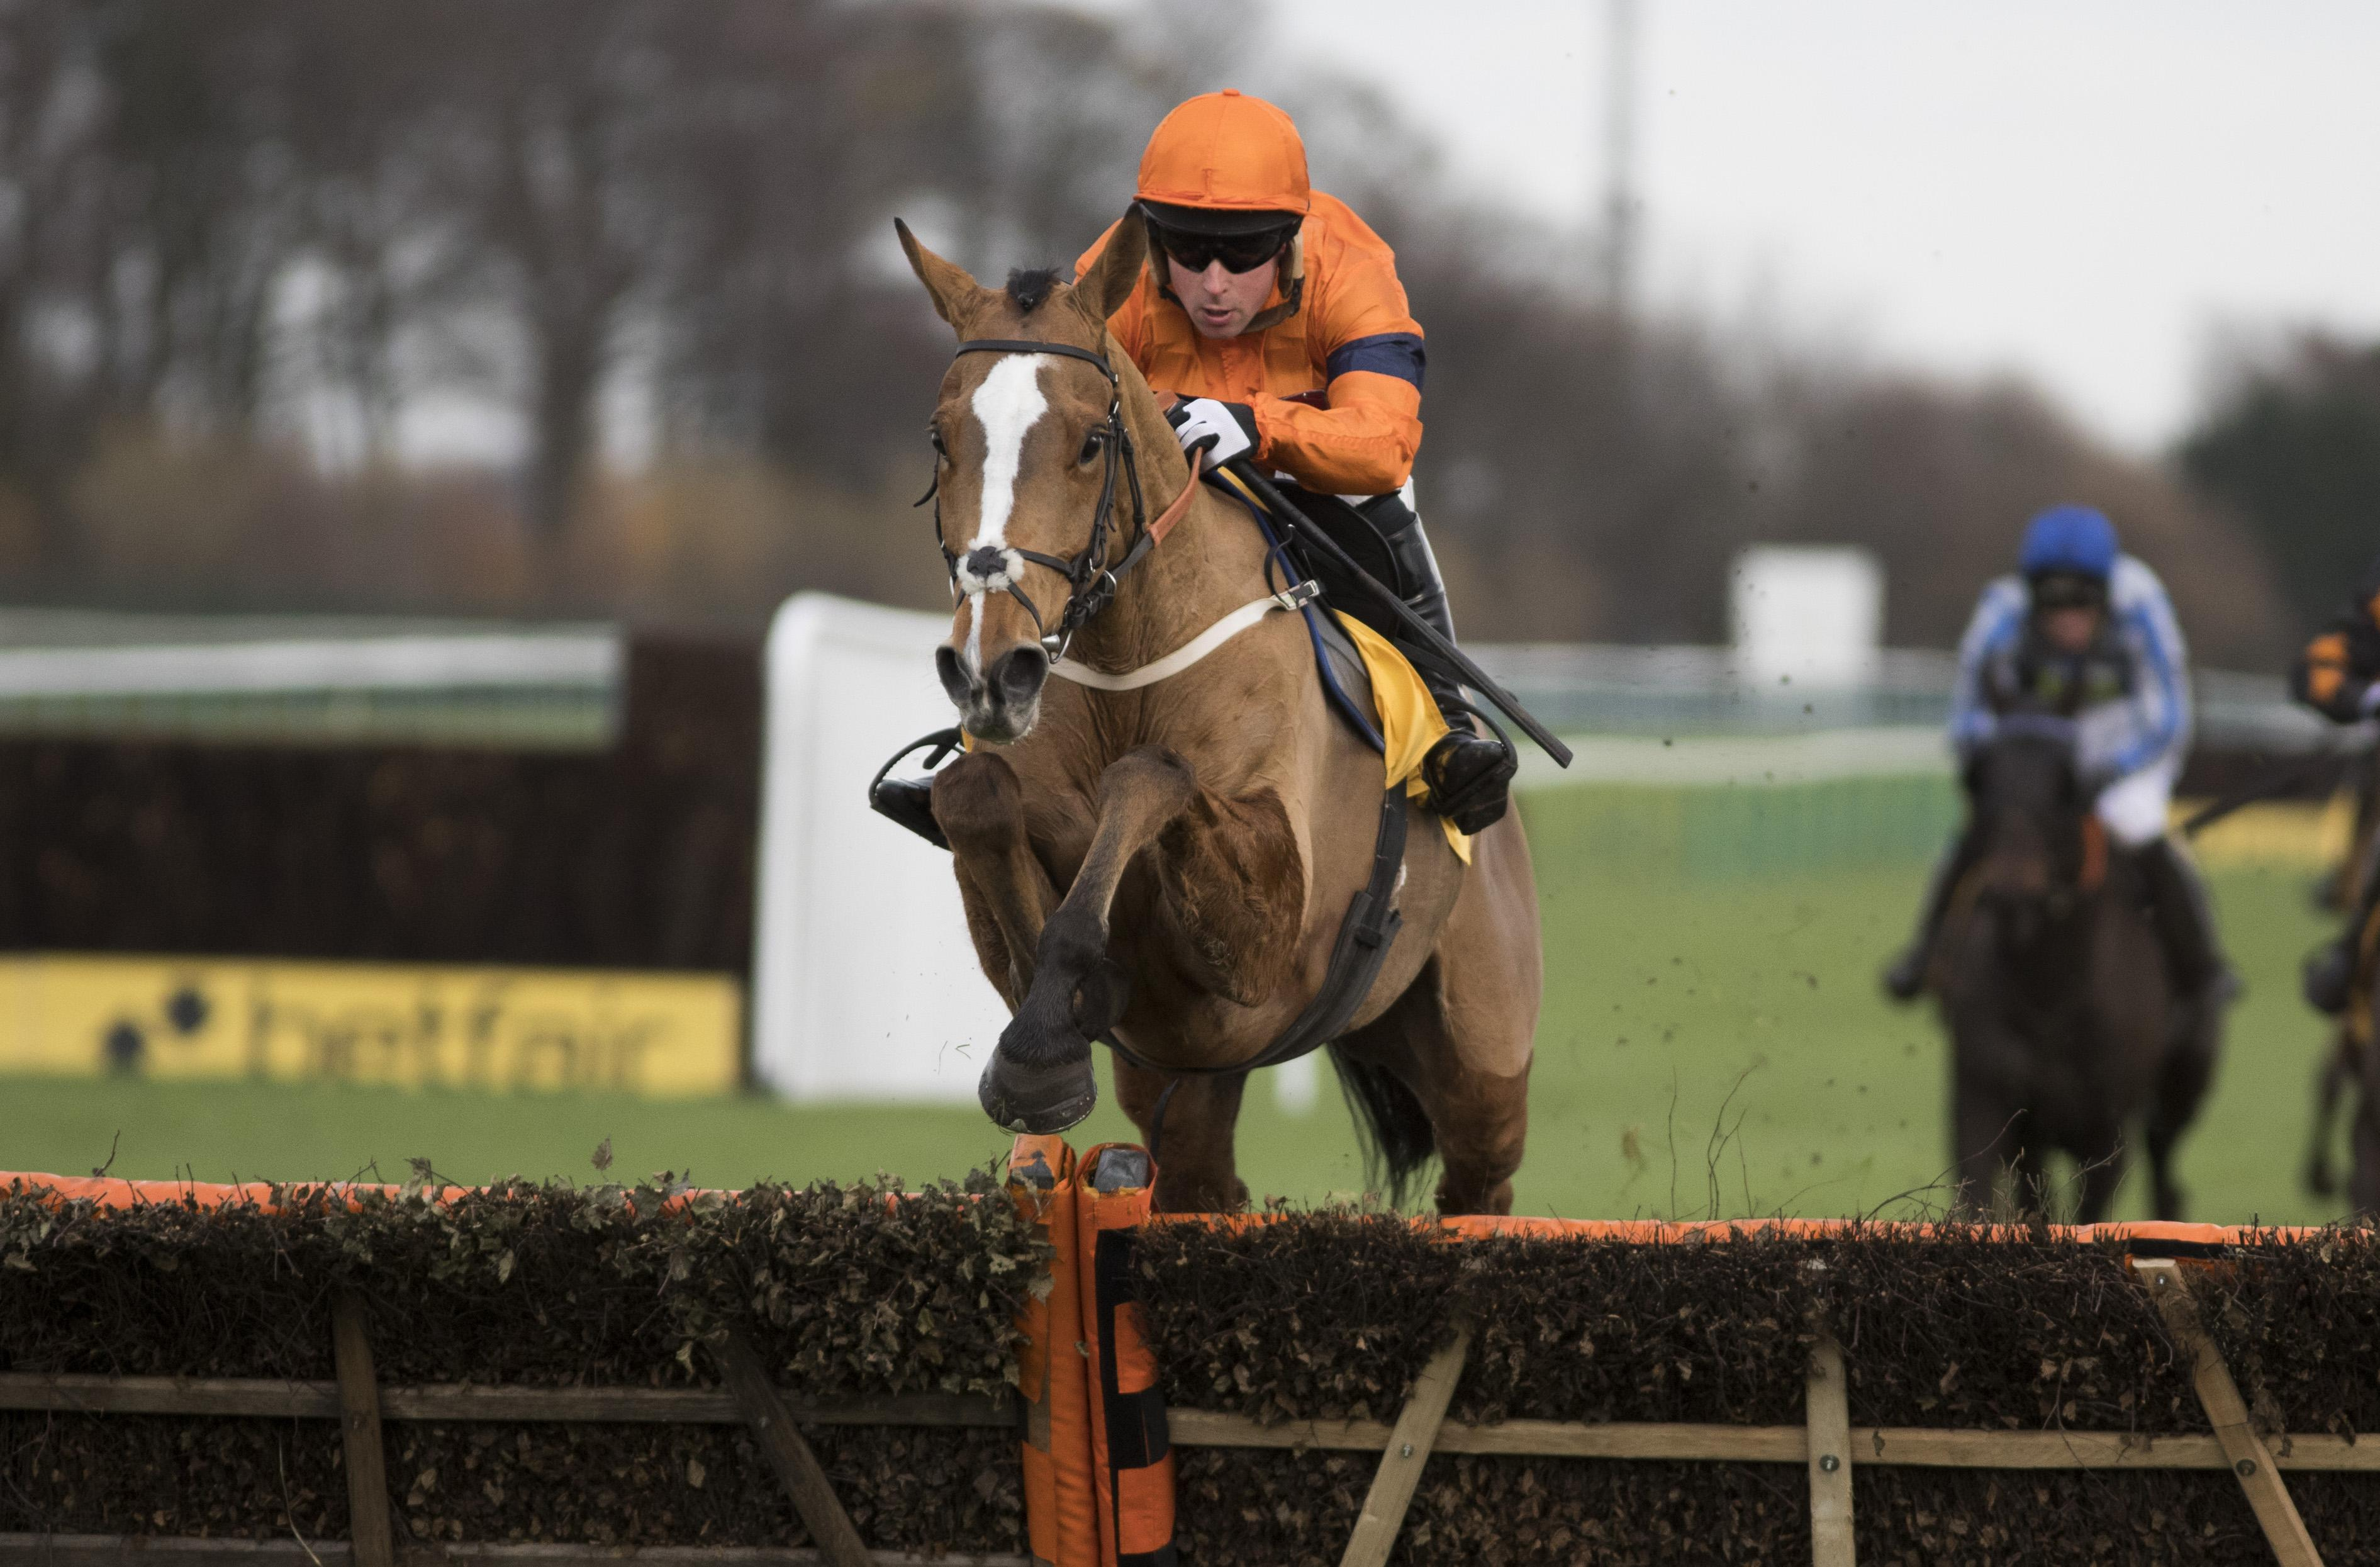 Sam Spinner to head for Aintree after Cheltenham disappointment